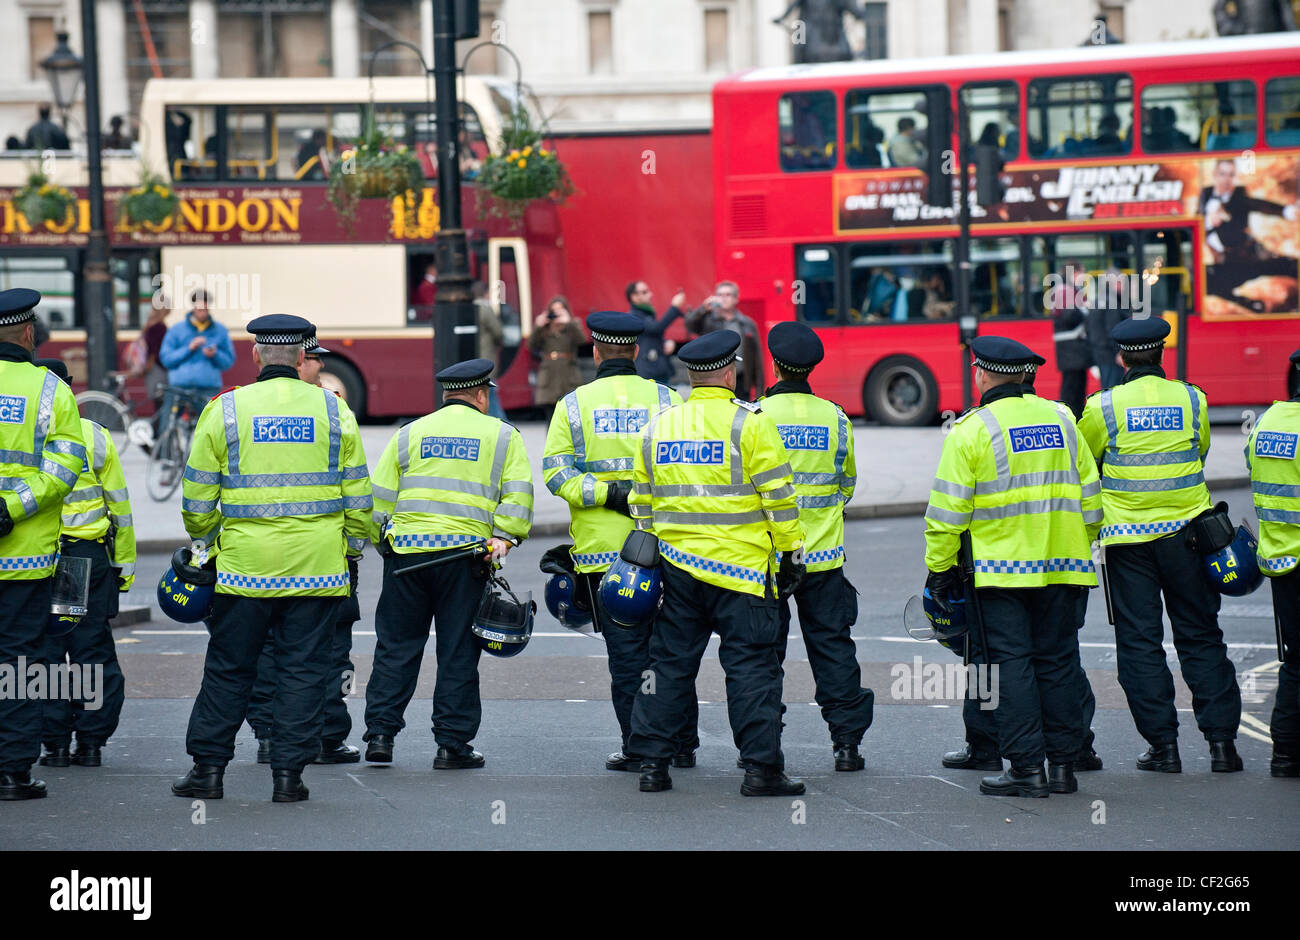 A cordon of Metropolitan Police Officers on duty in central London. - Stock Image